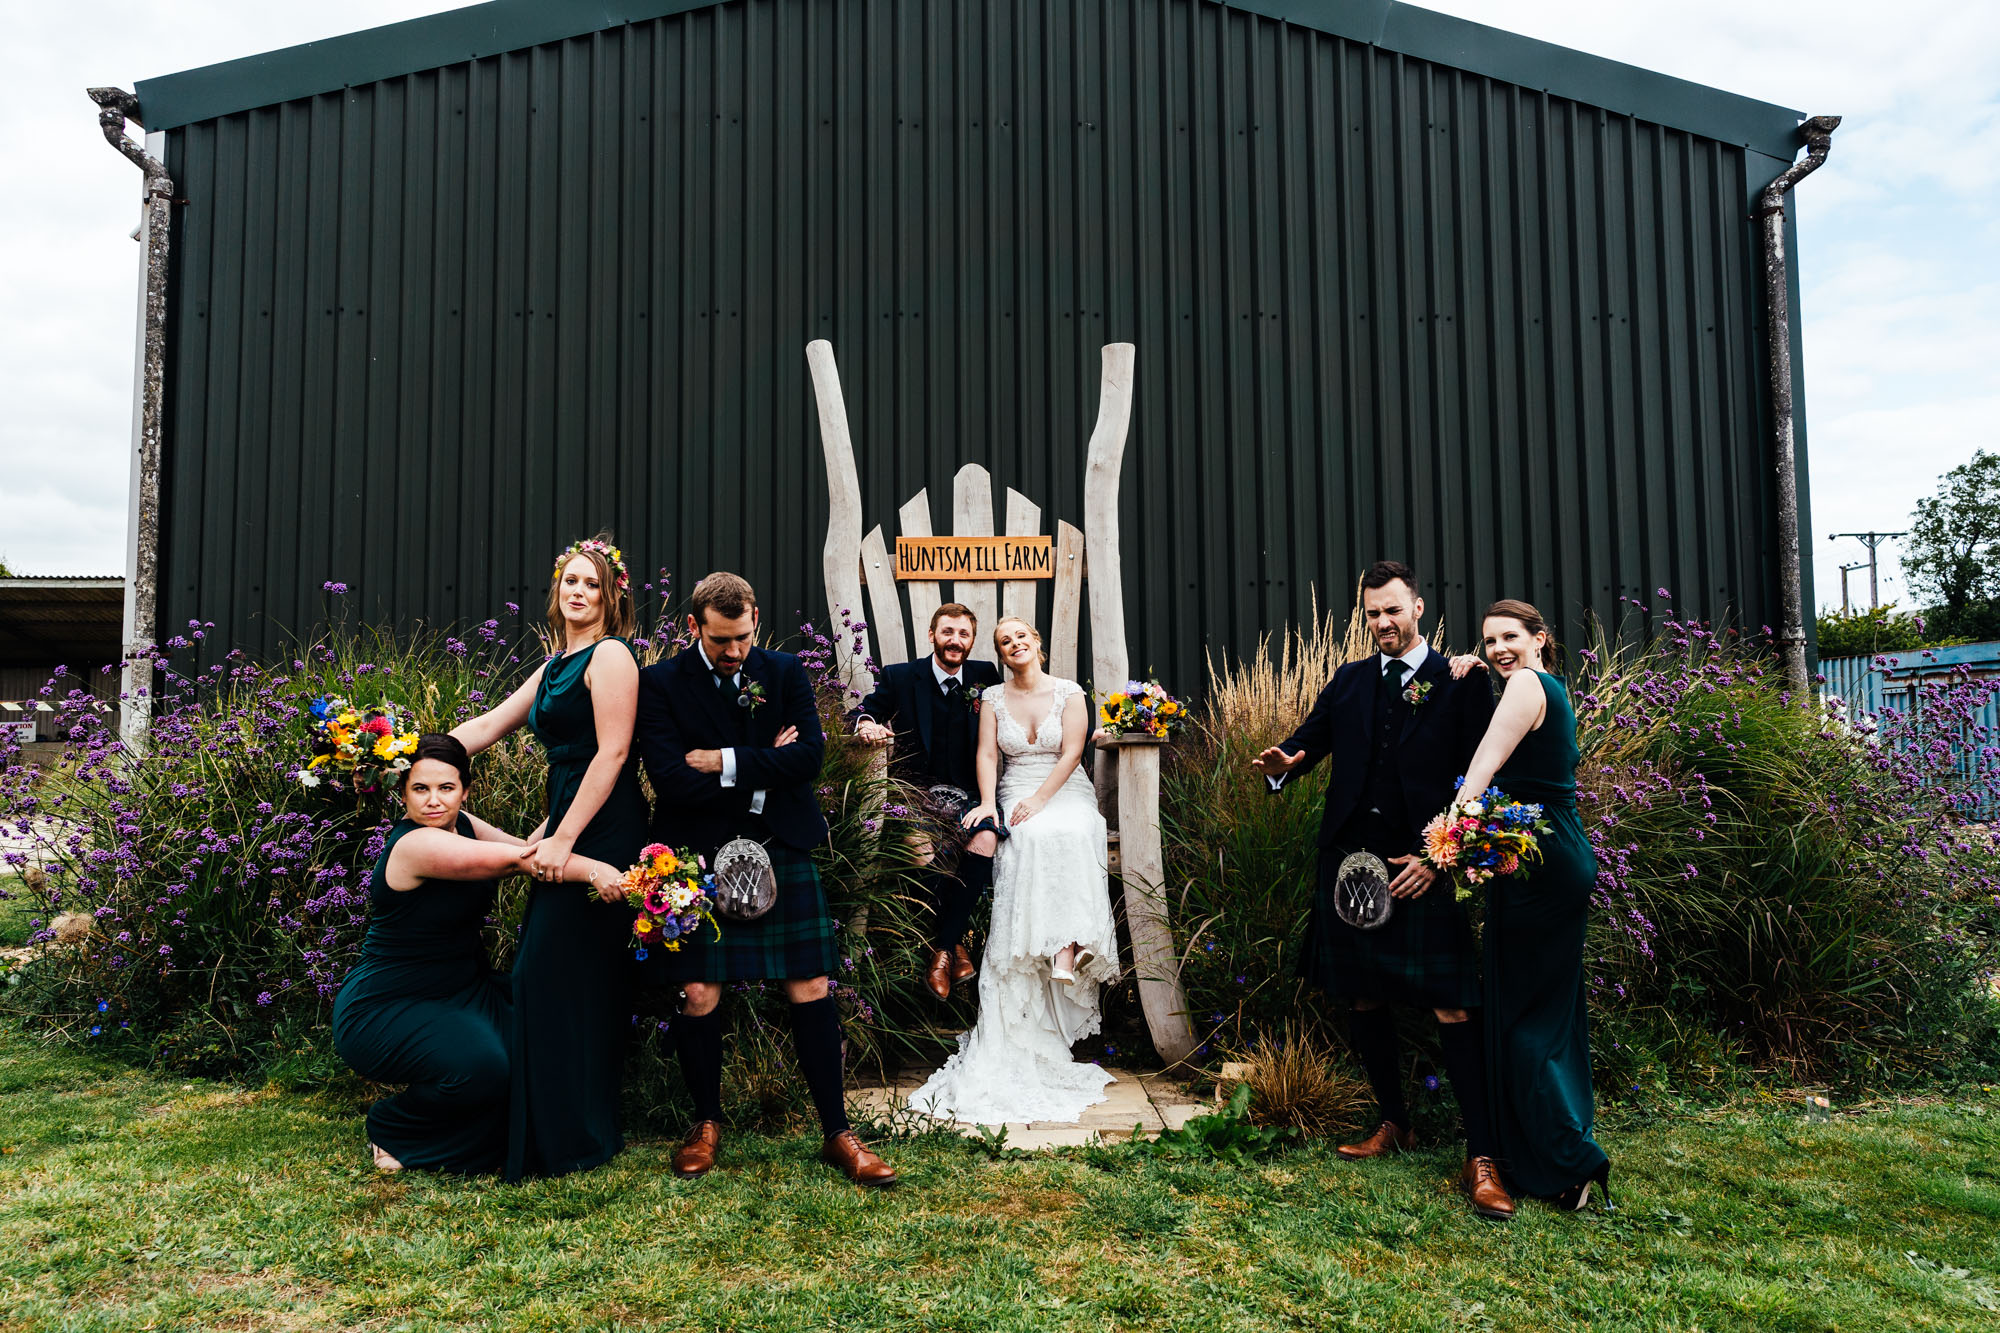 wedding-huntsmill-farm-44